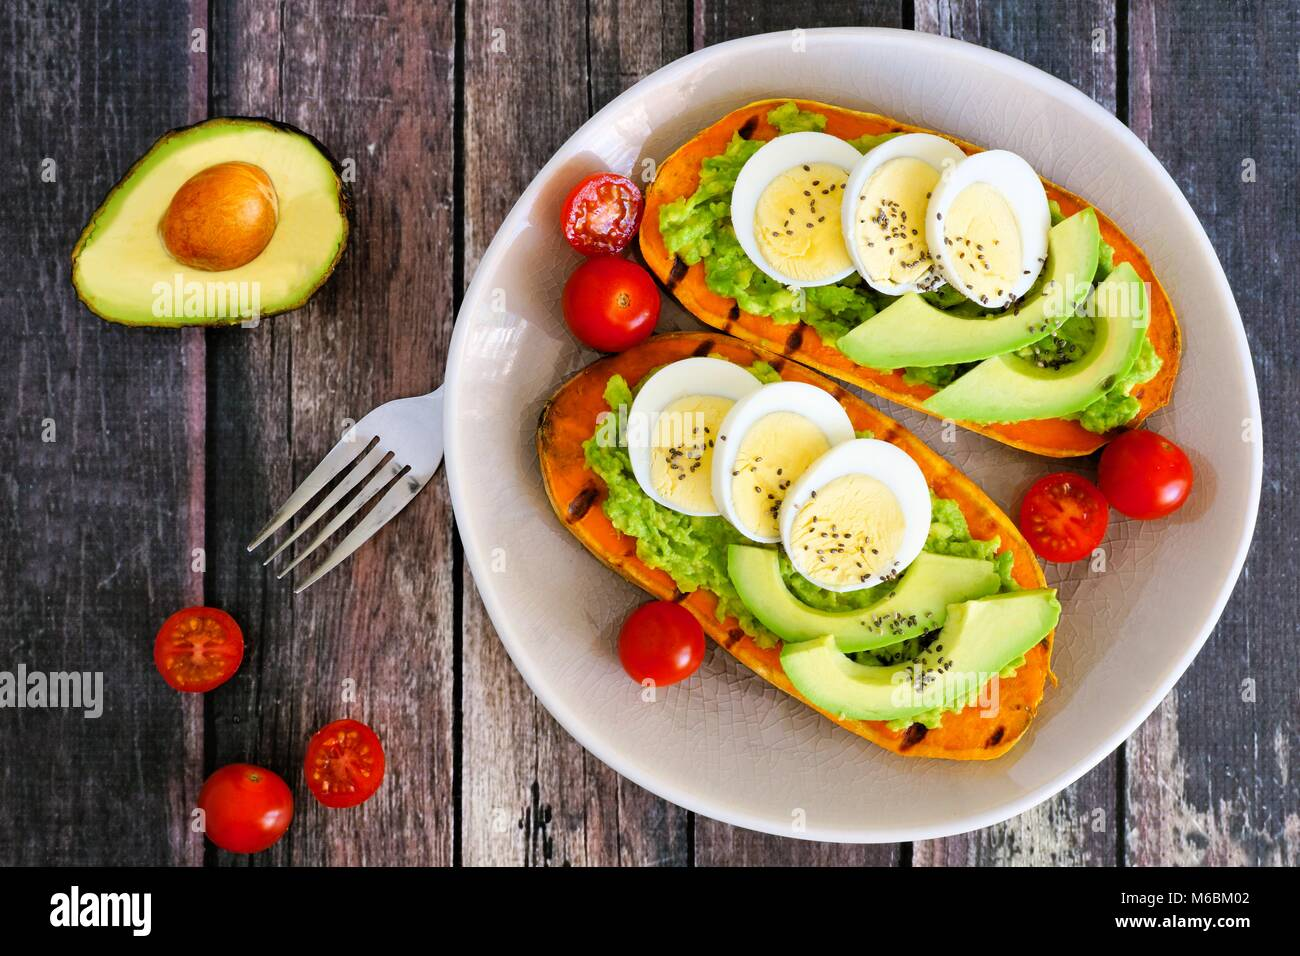 Sweet potato toasts with avocado, eggs and chia seeds on a plate. Top view on a dark wood background. Stock Photo